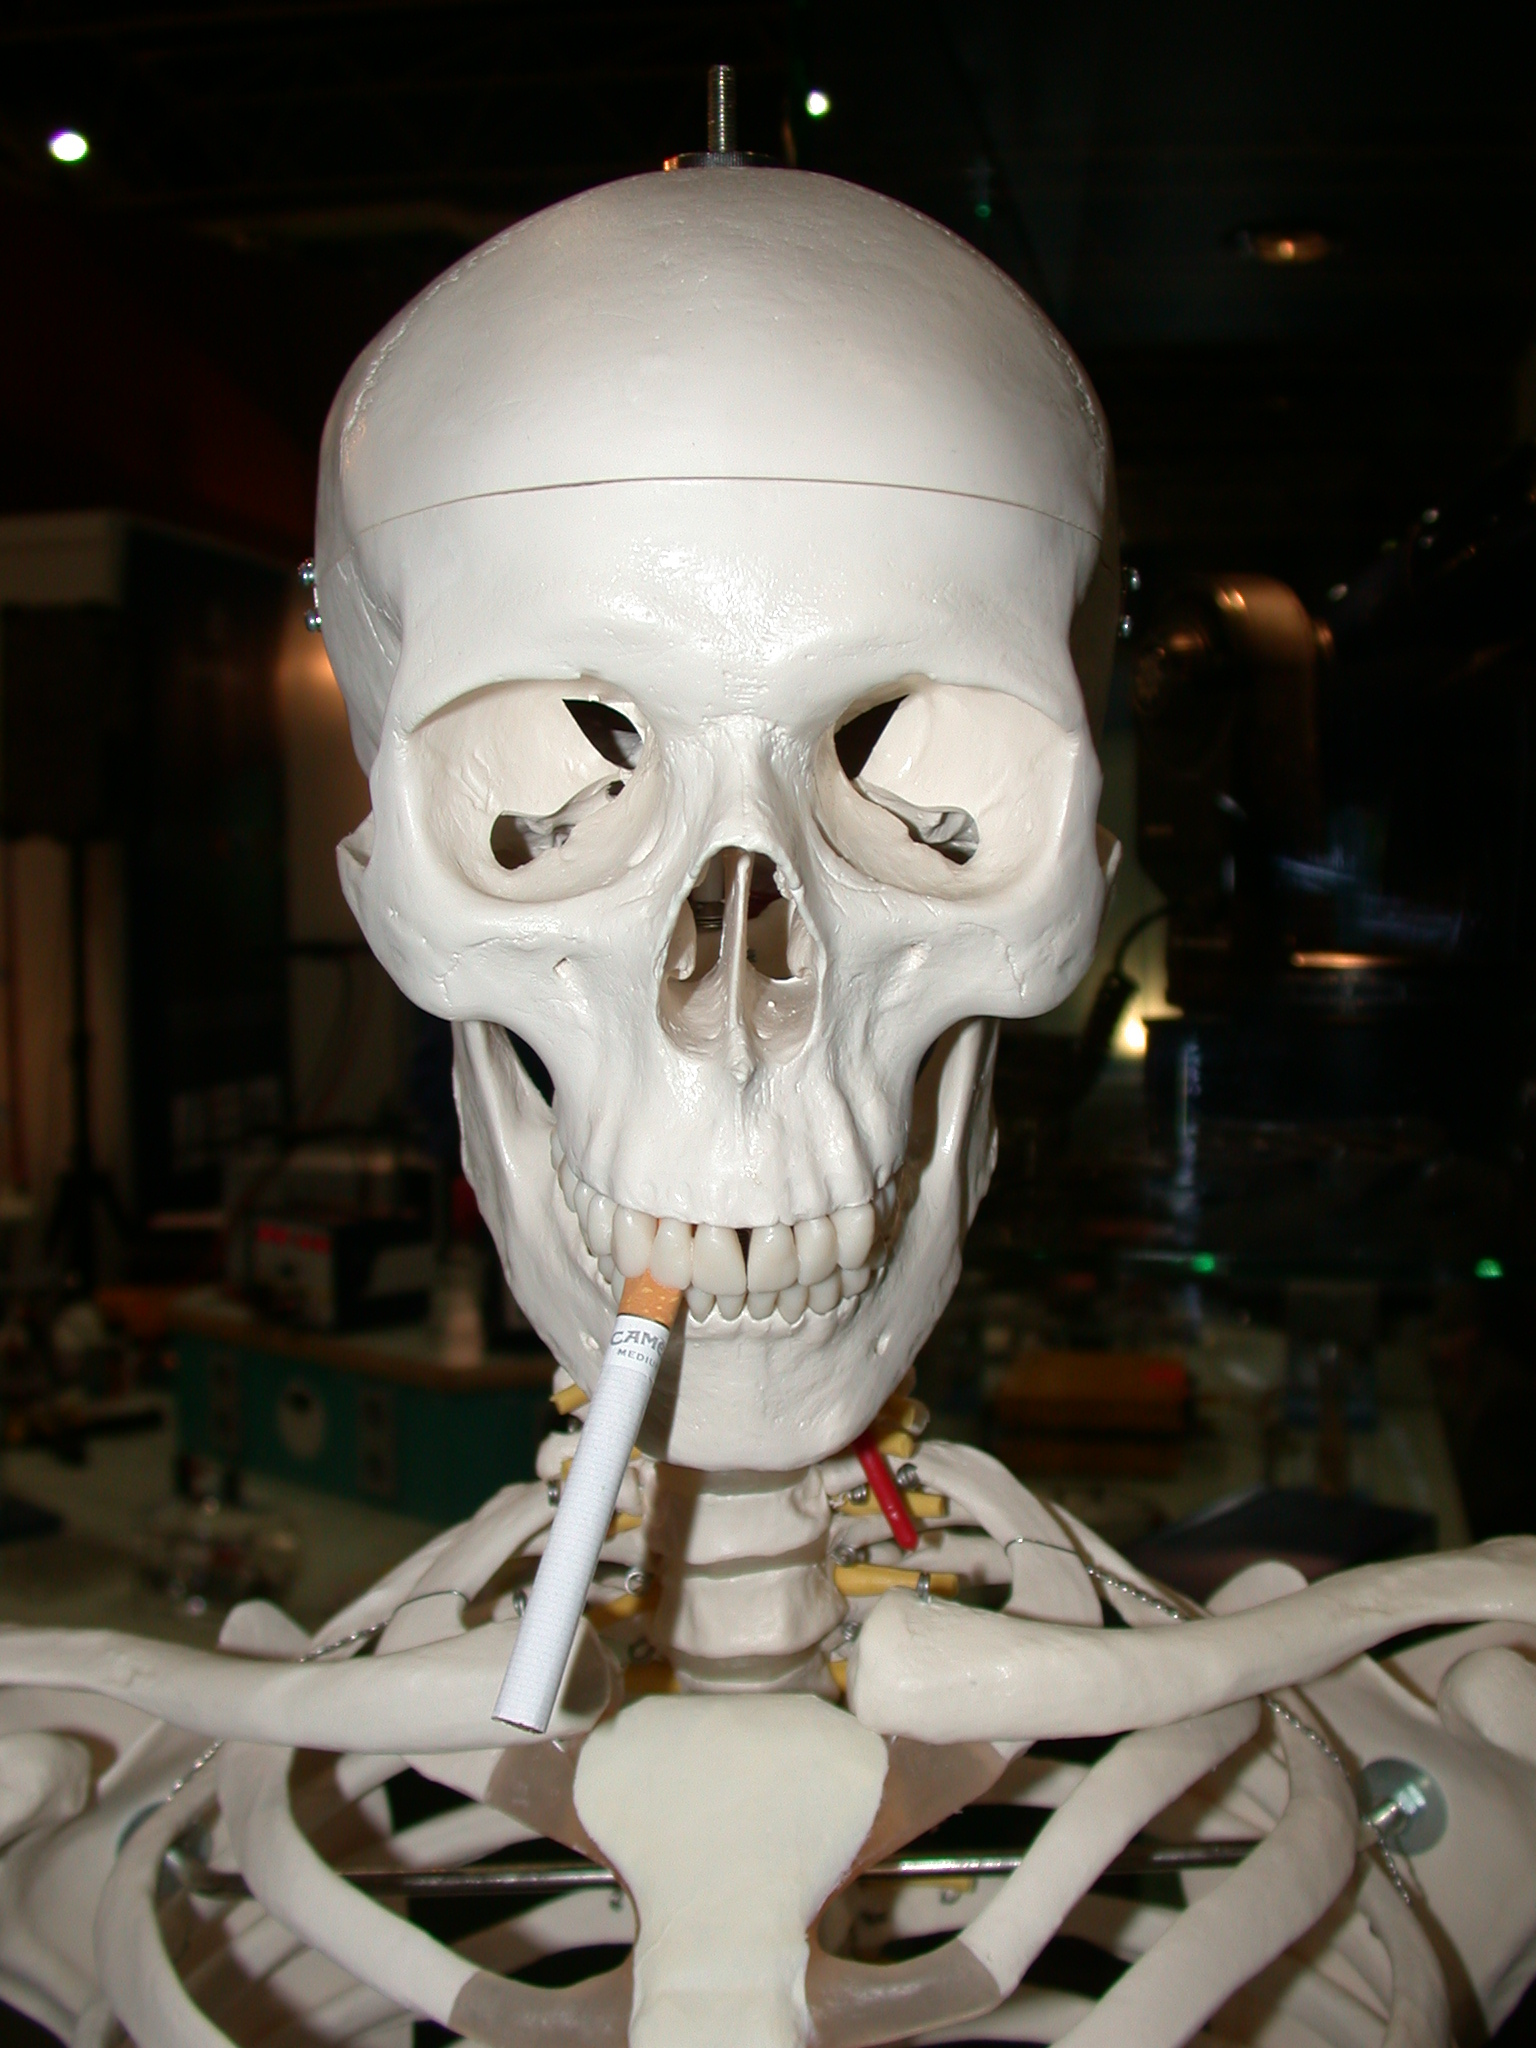 smoking kills and gives you amazingly clean teeth in this case :) skelleton sigarette smoke skull jaw bones plastic